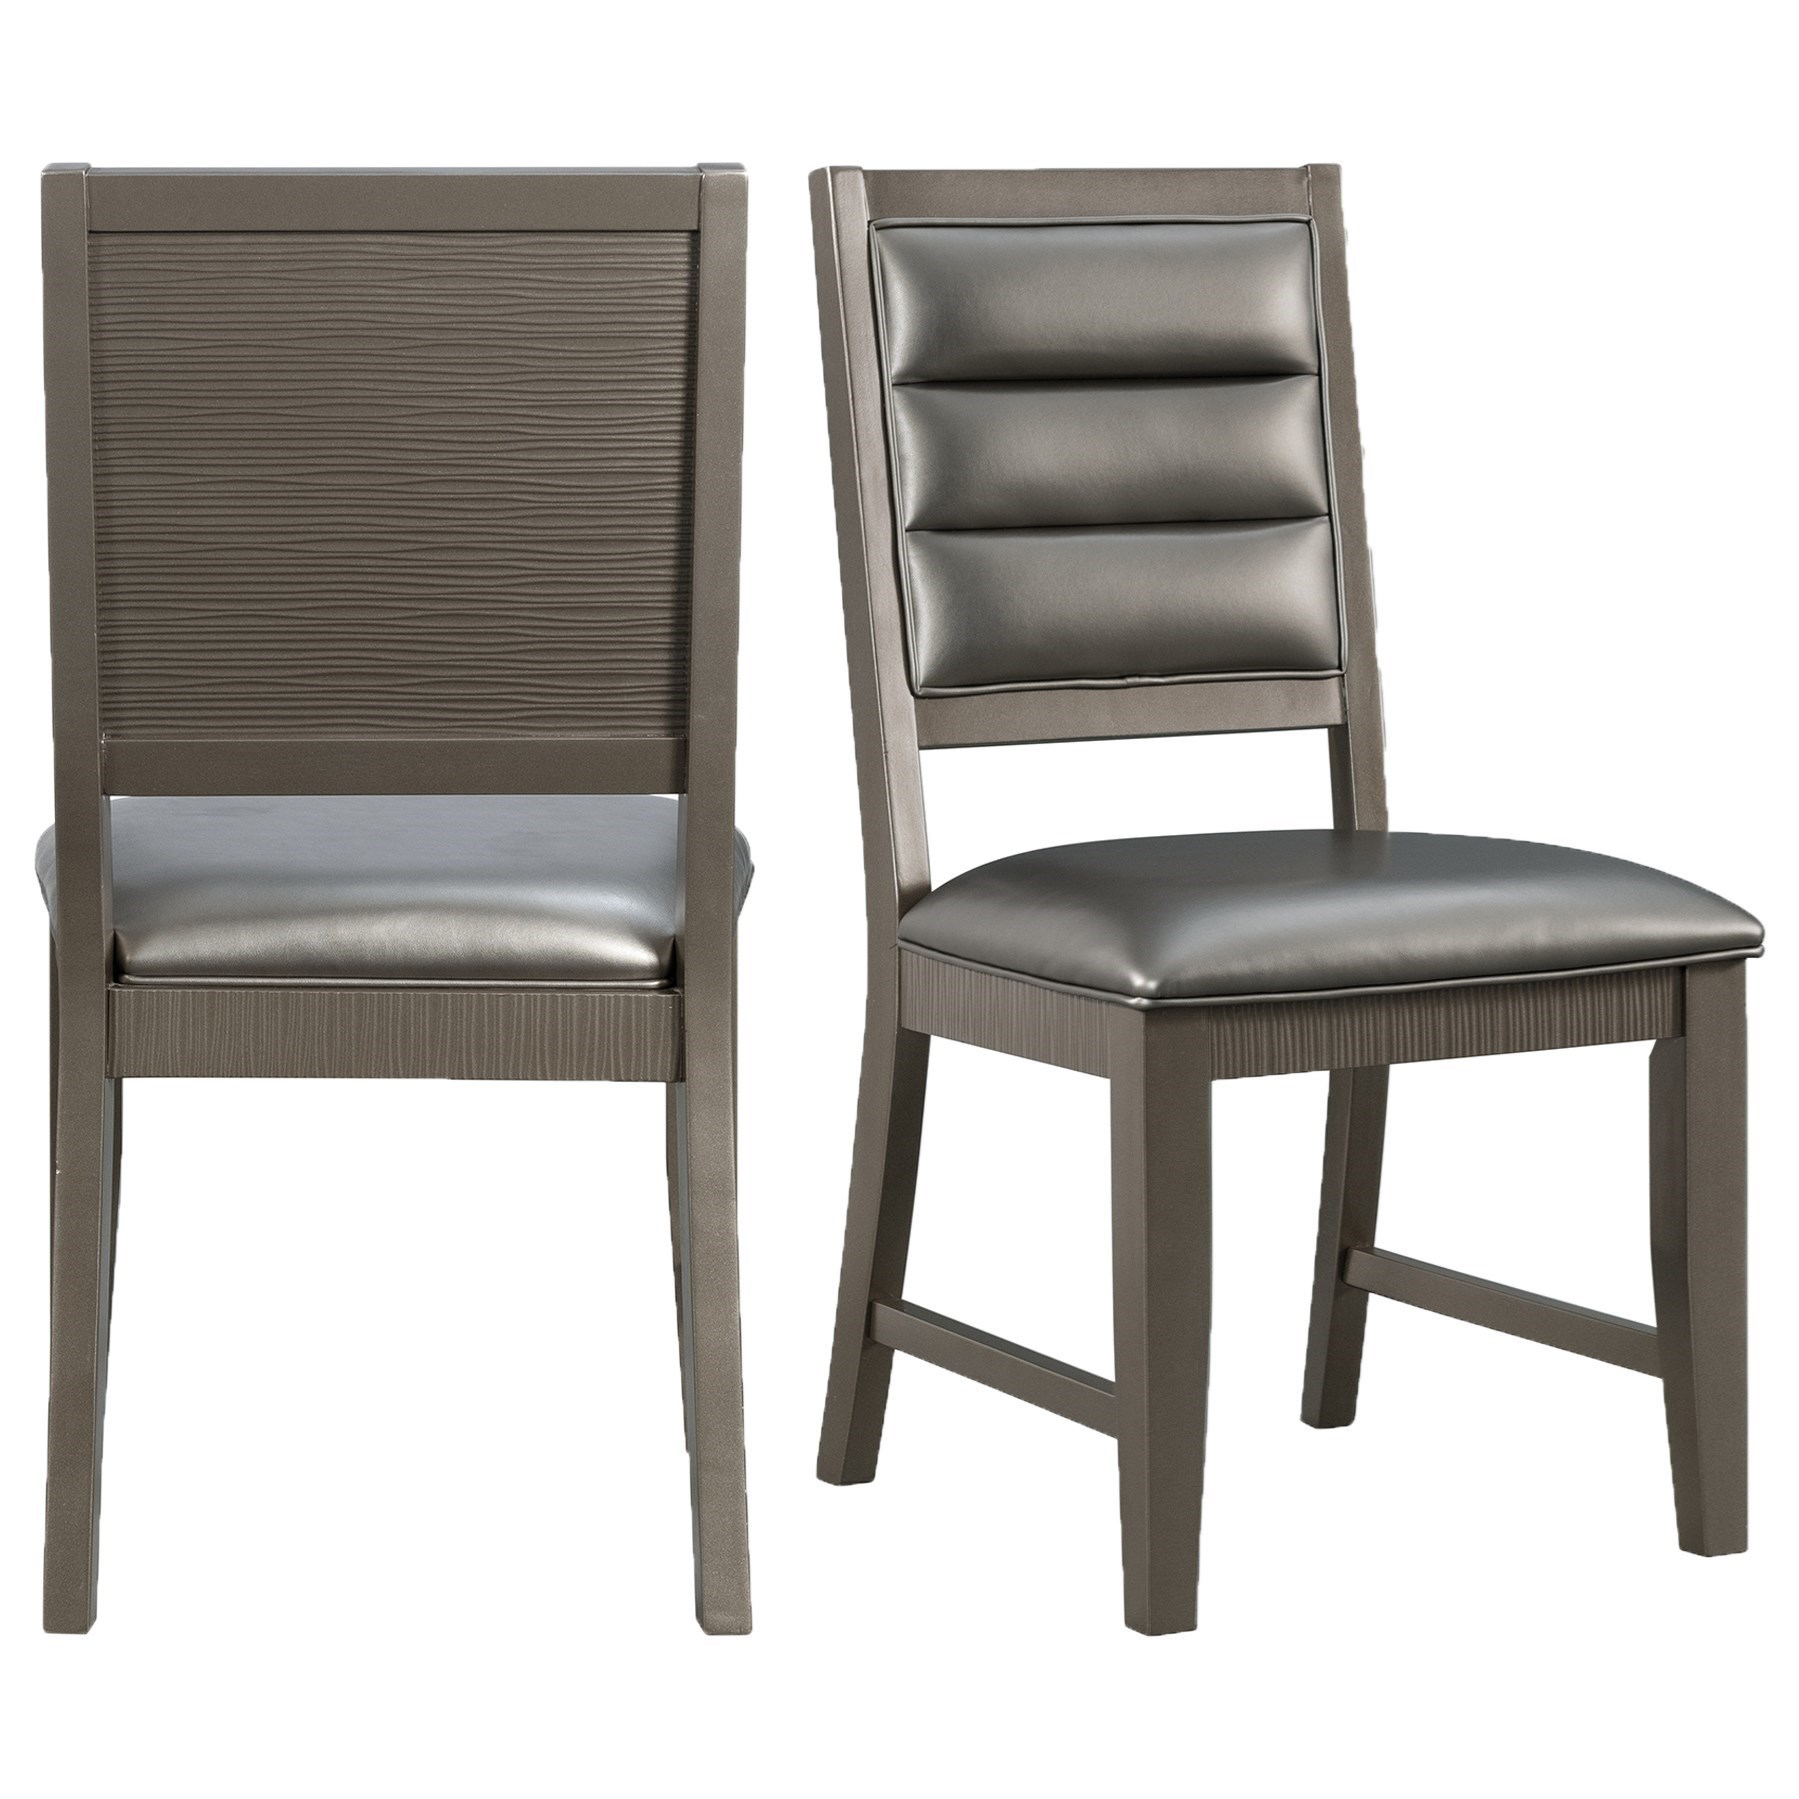 14.5 Standard Height Side Chair by Elements International at Becker Furniture